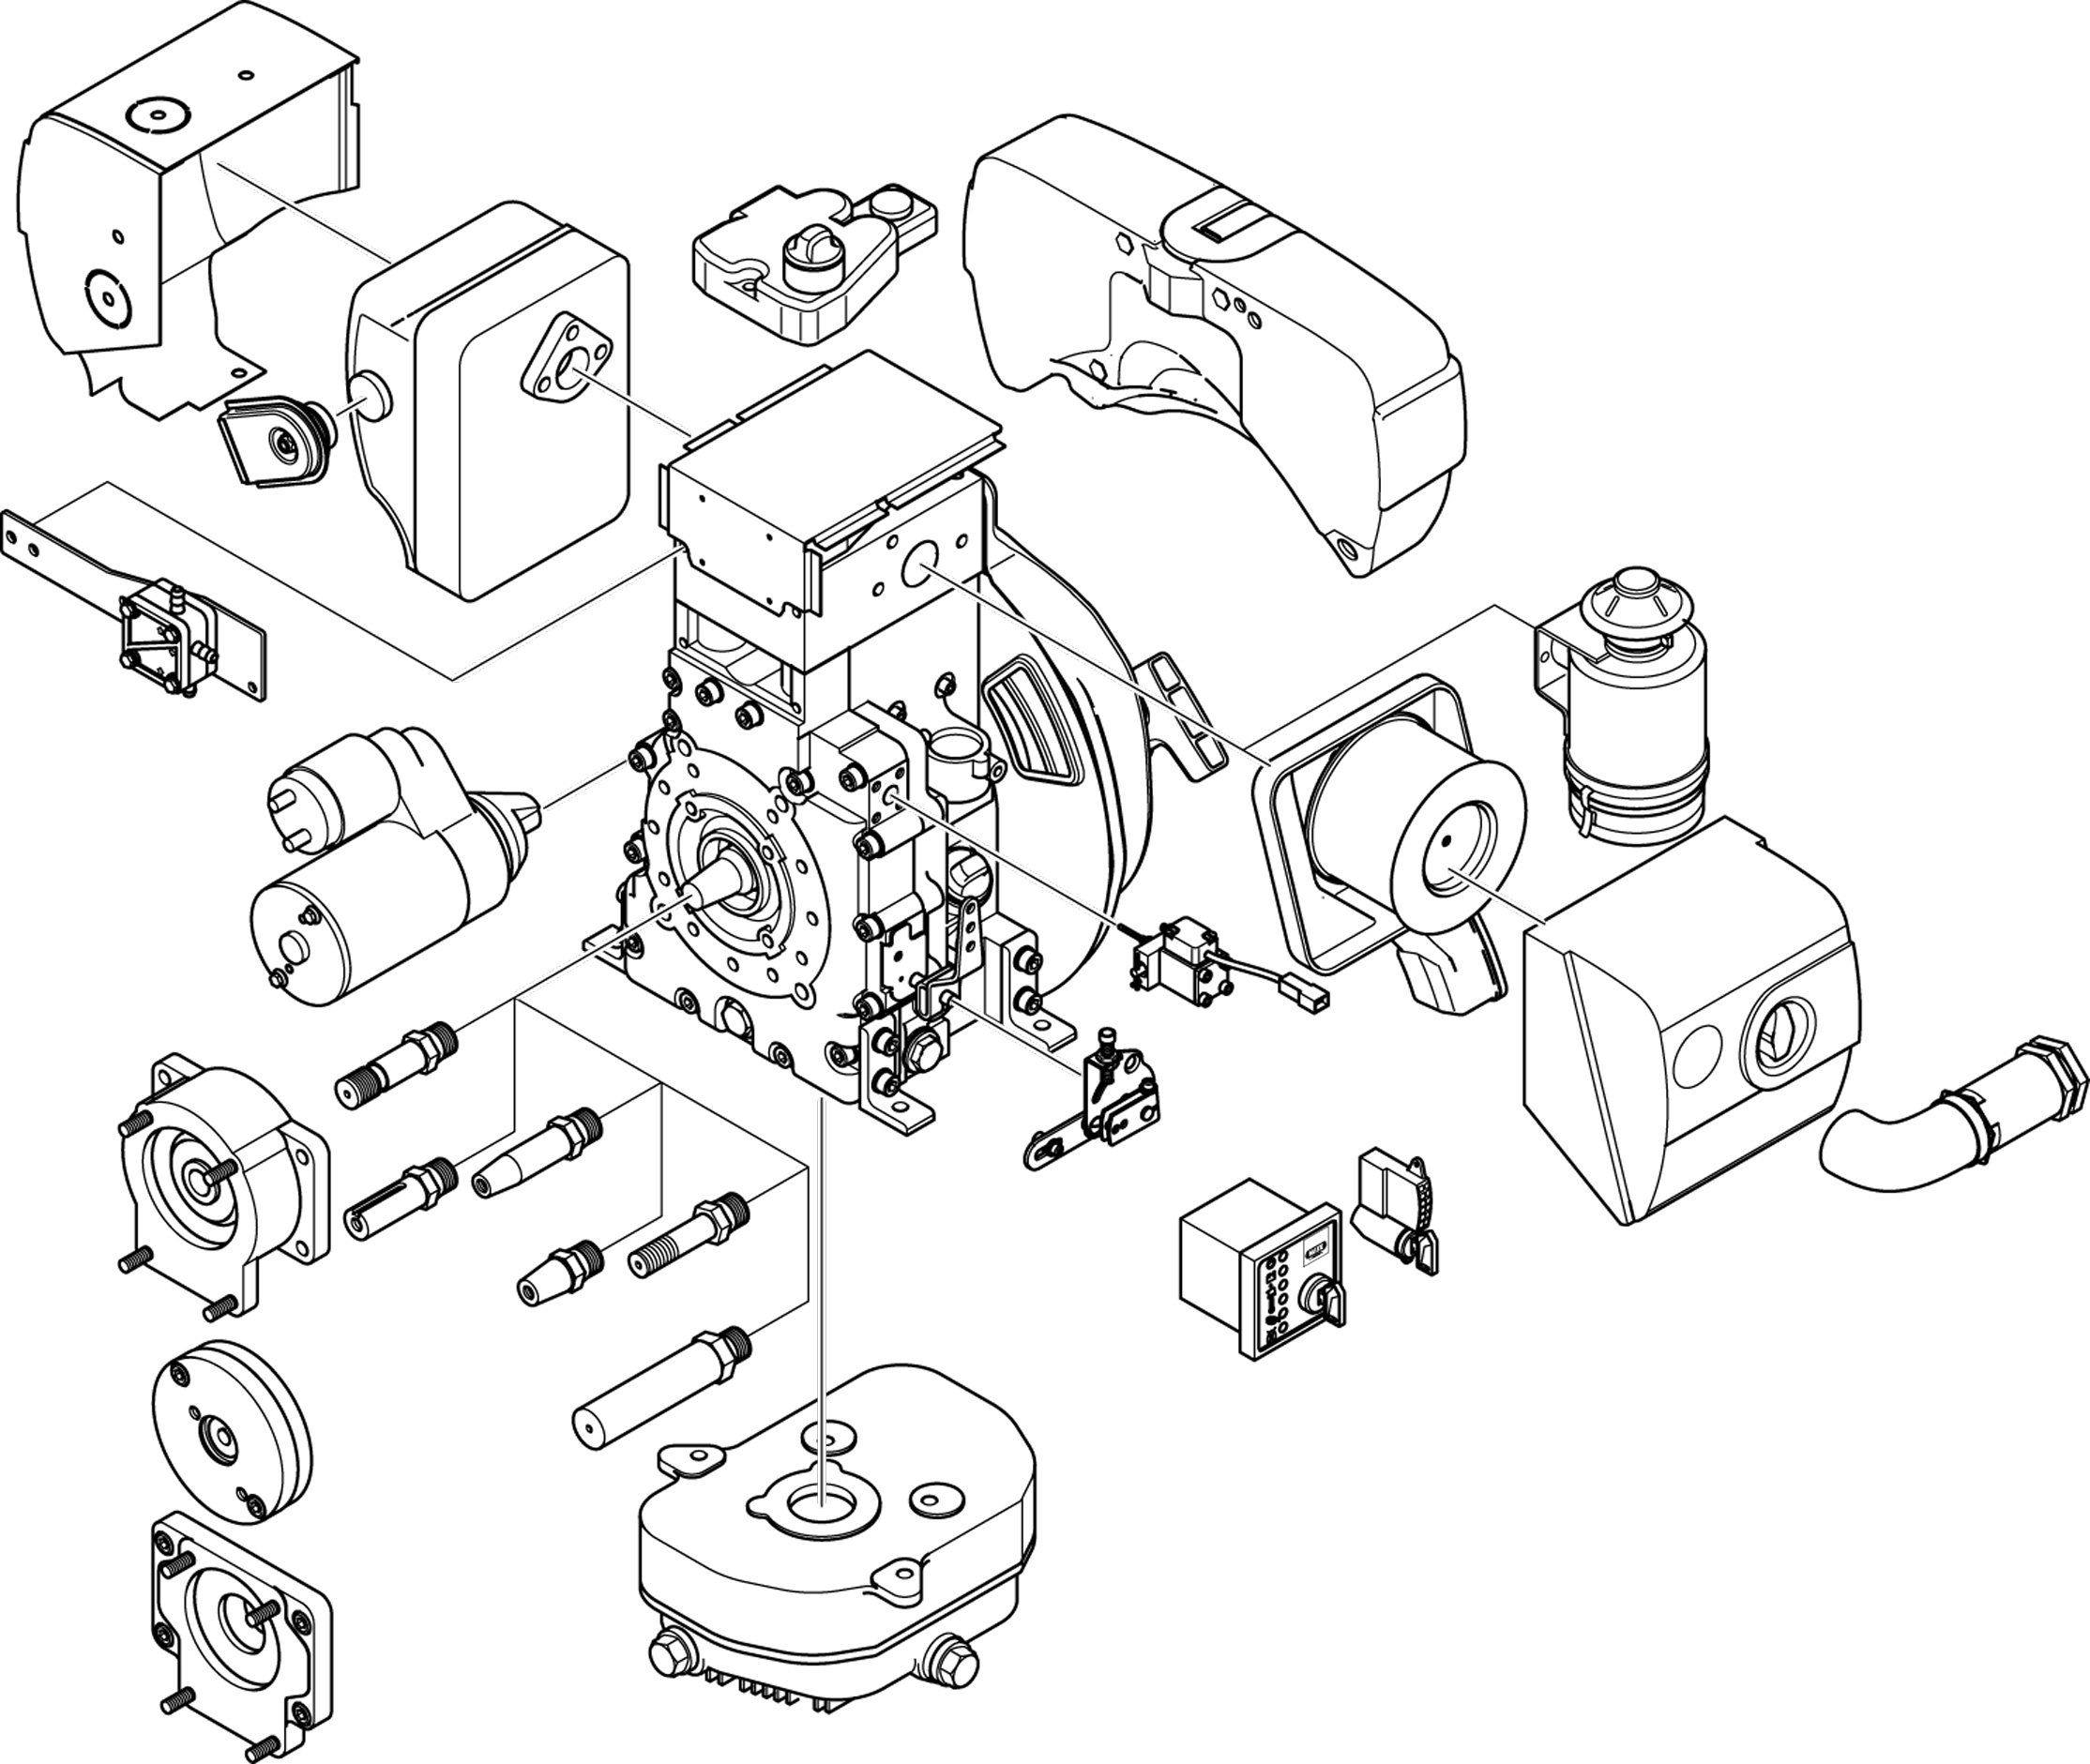 ford focus engine parts diagram 1975 harley davidson sportster wiring tauru assembly database 2005 best library features 2011 taurus